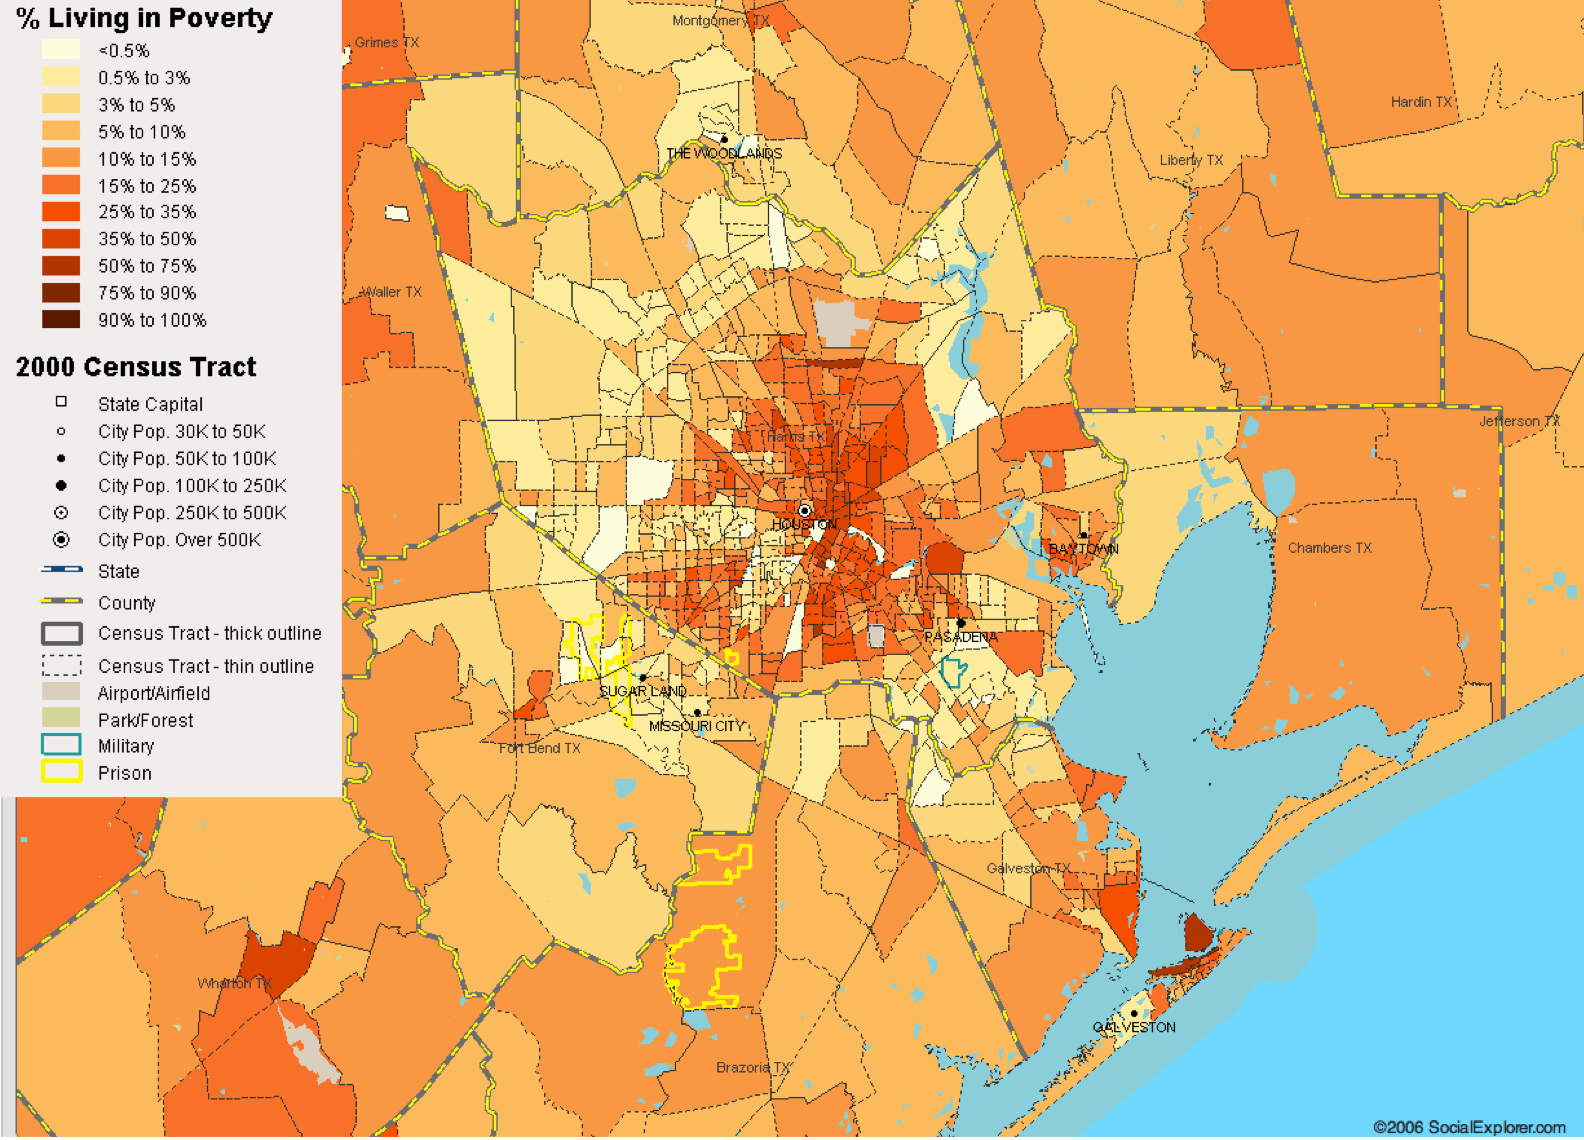 Houston, TX Poverty Map — Visualizing Economics on san antonio, pasadena texas map, texas city map, new orleans, las vegas, cypress texas map, los angeles, san francisco, dallas texas map, hazel texas map, new york city, austin texas map, san diego, el paso, the woodlands texas map, humble texas map, grapevine texas map, irving texas map, fort worth texas map, st. louis map, mcallen texas map, houston tx, laredo texas map, huffman texas map, del rio texas map, united states map, south texas map, mckinney texas map,